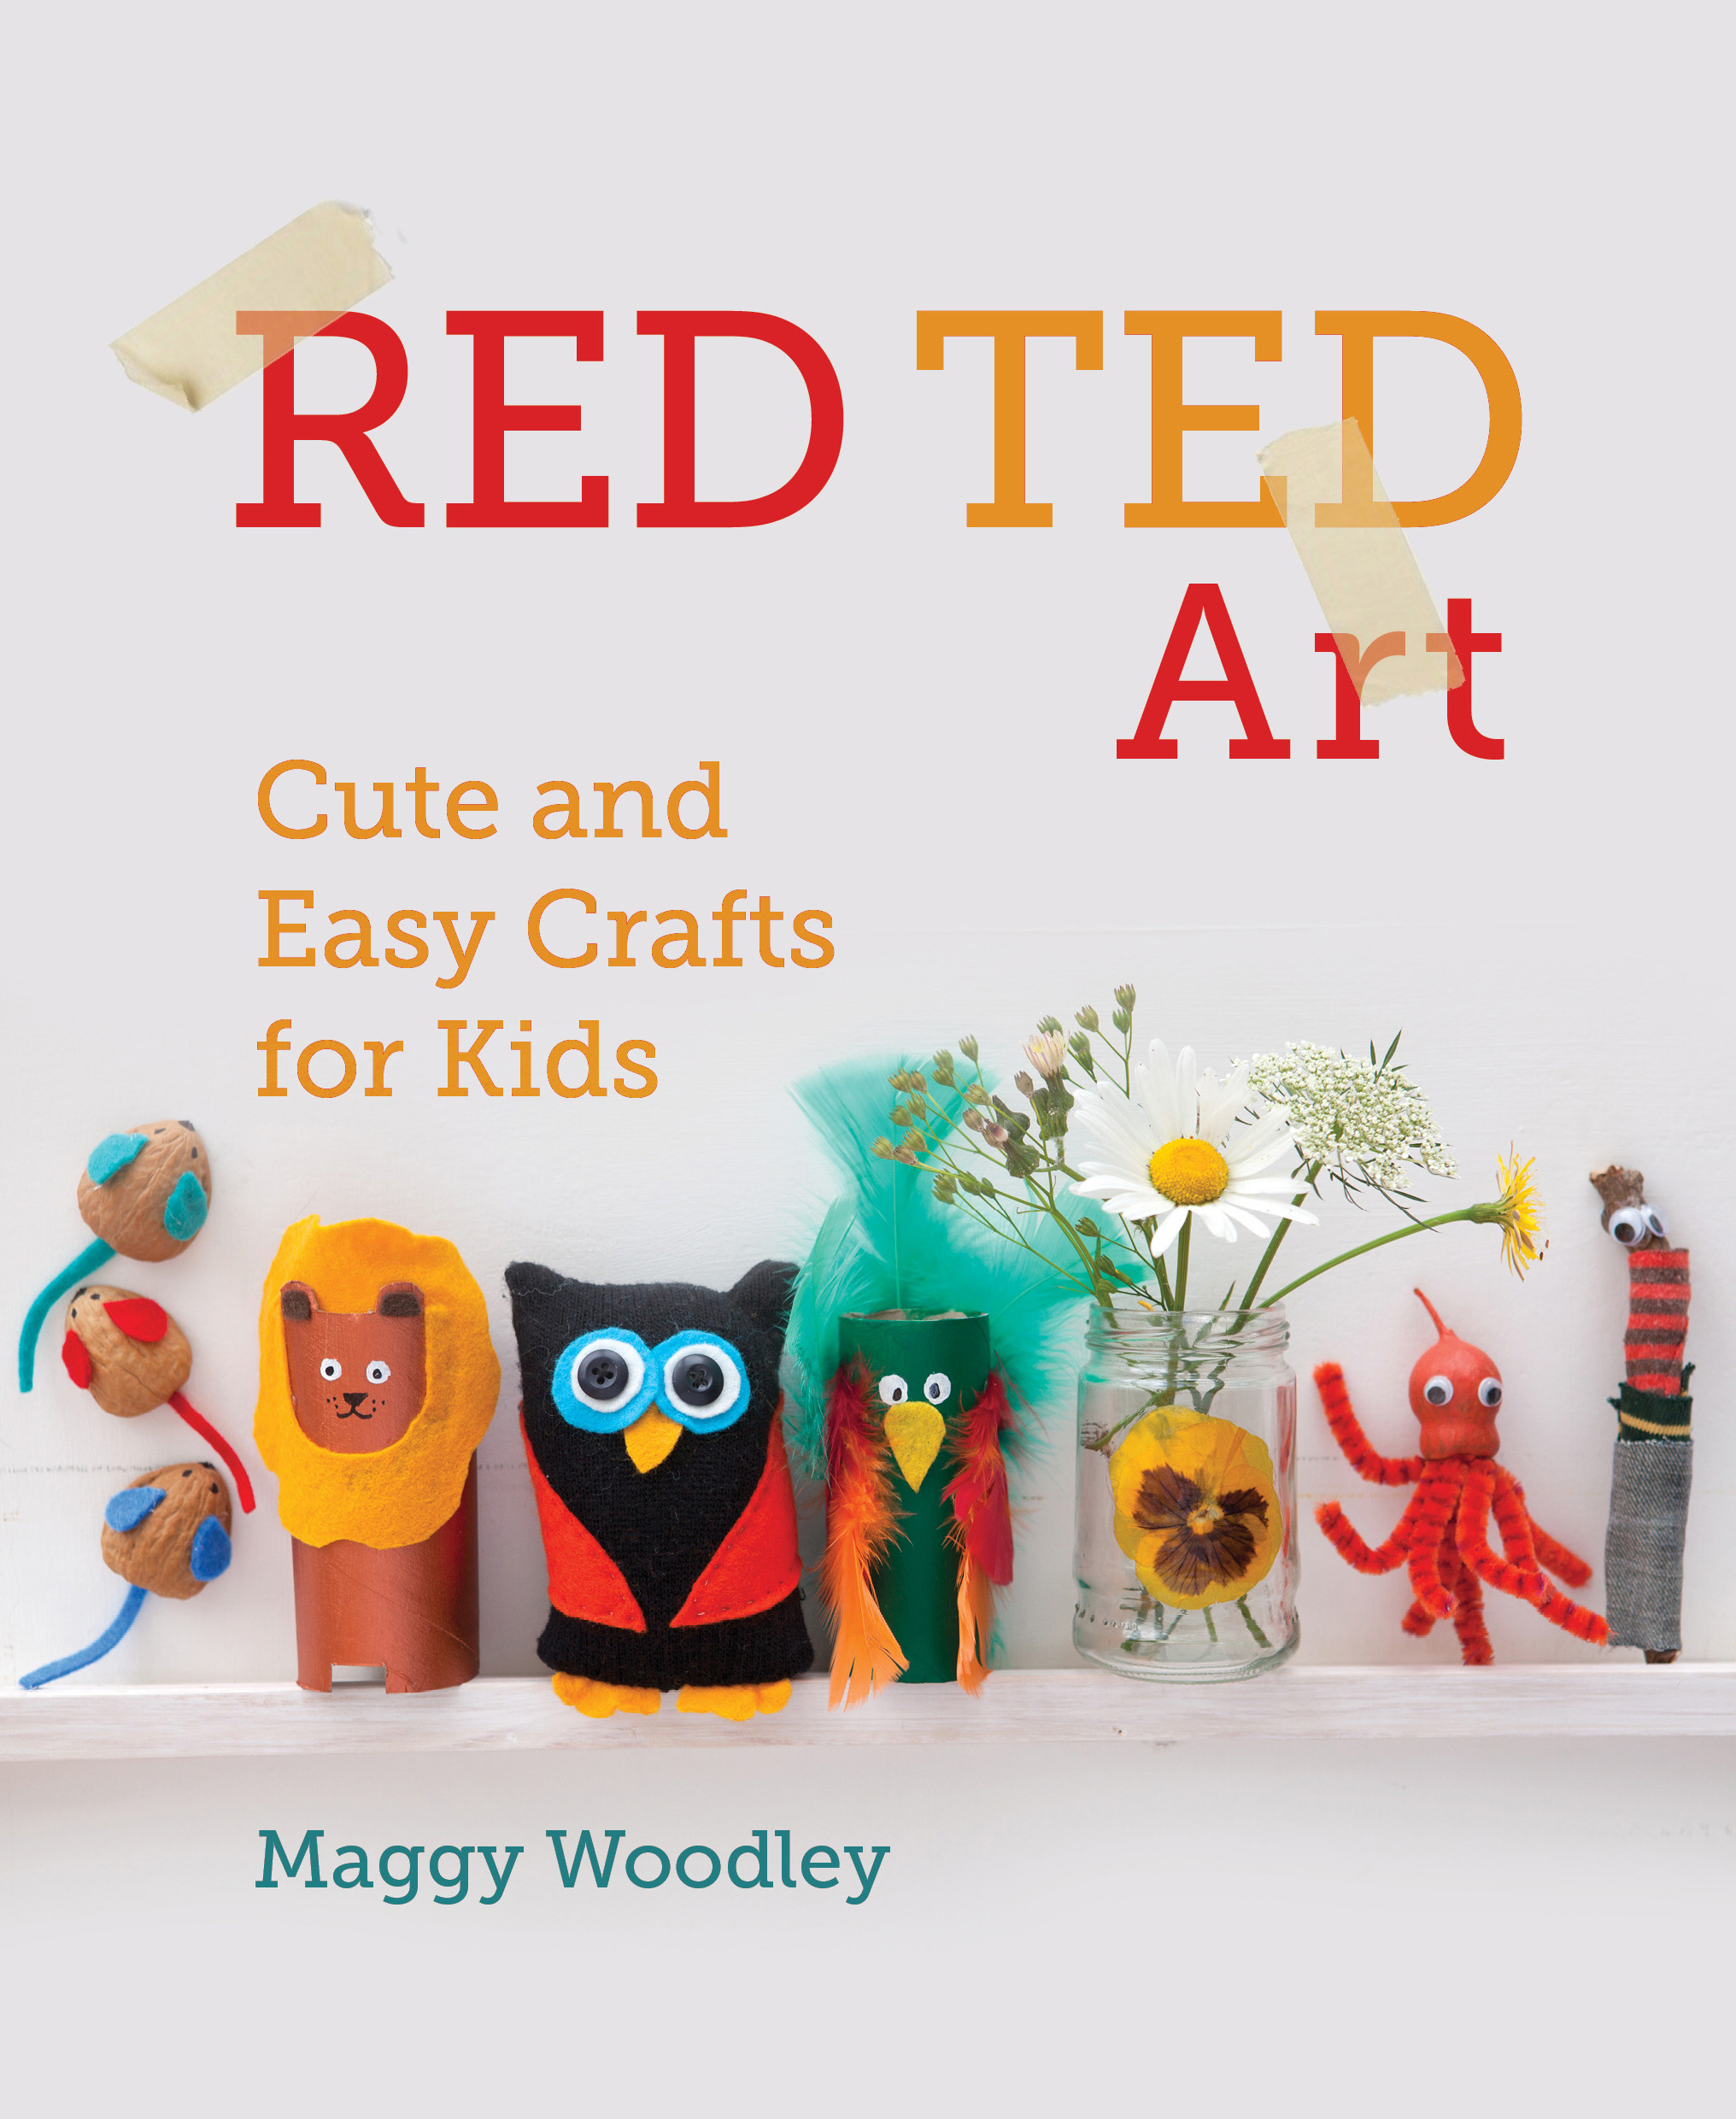 Red Ted Art Cute and Easy Crafts for Kids